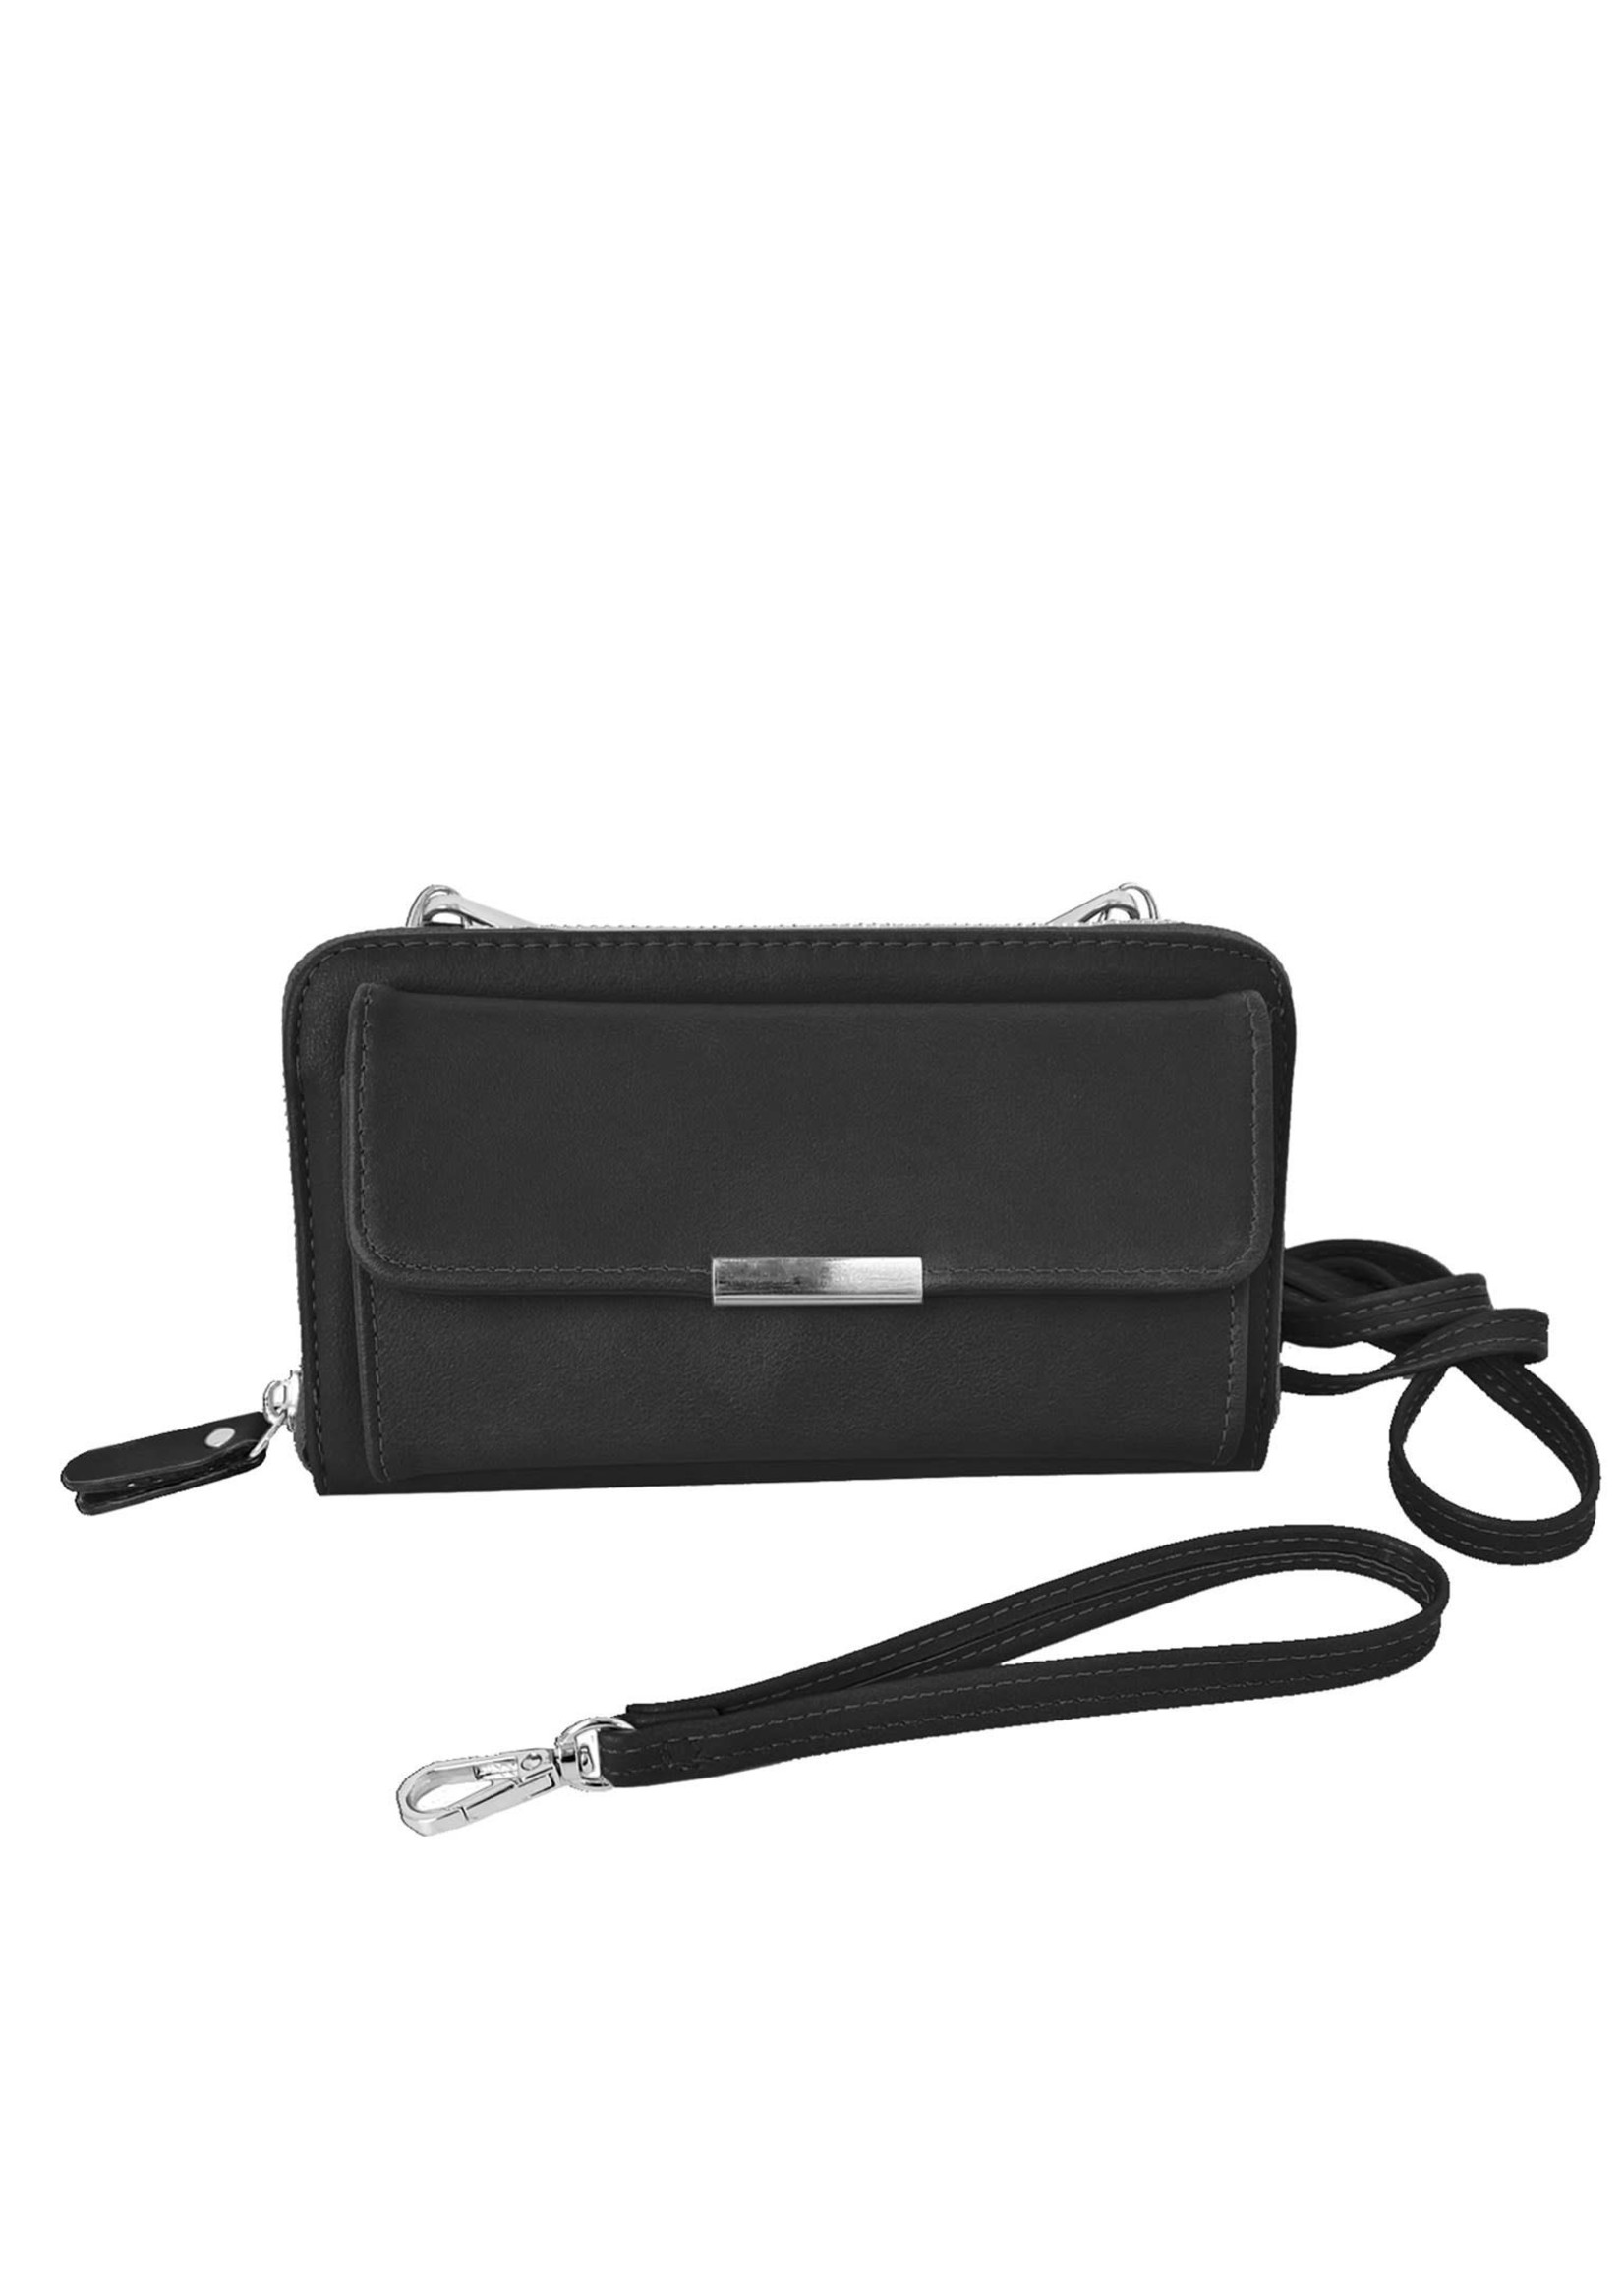 Caracol Black 2 In 1 Purse/Wallet